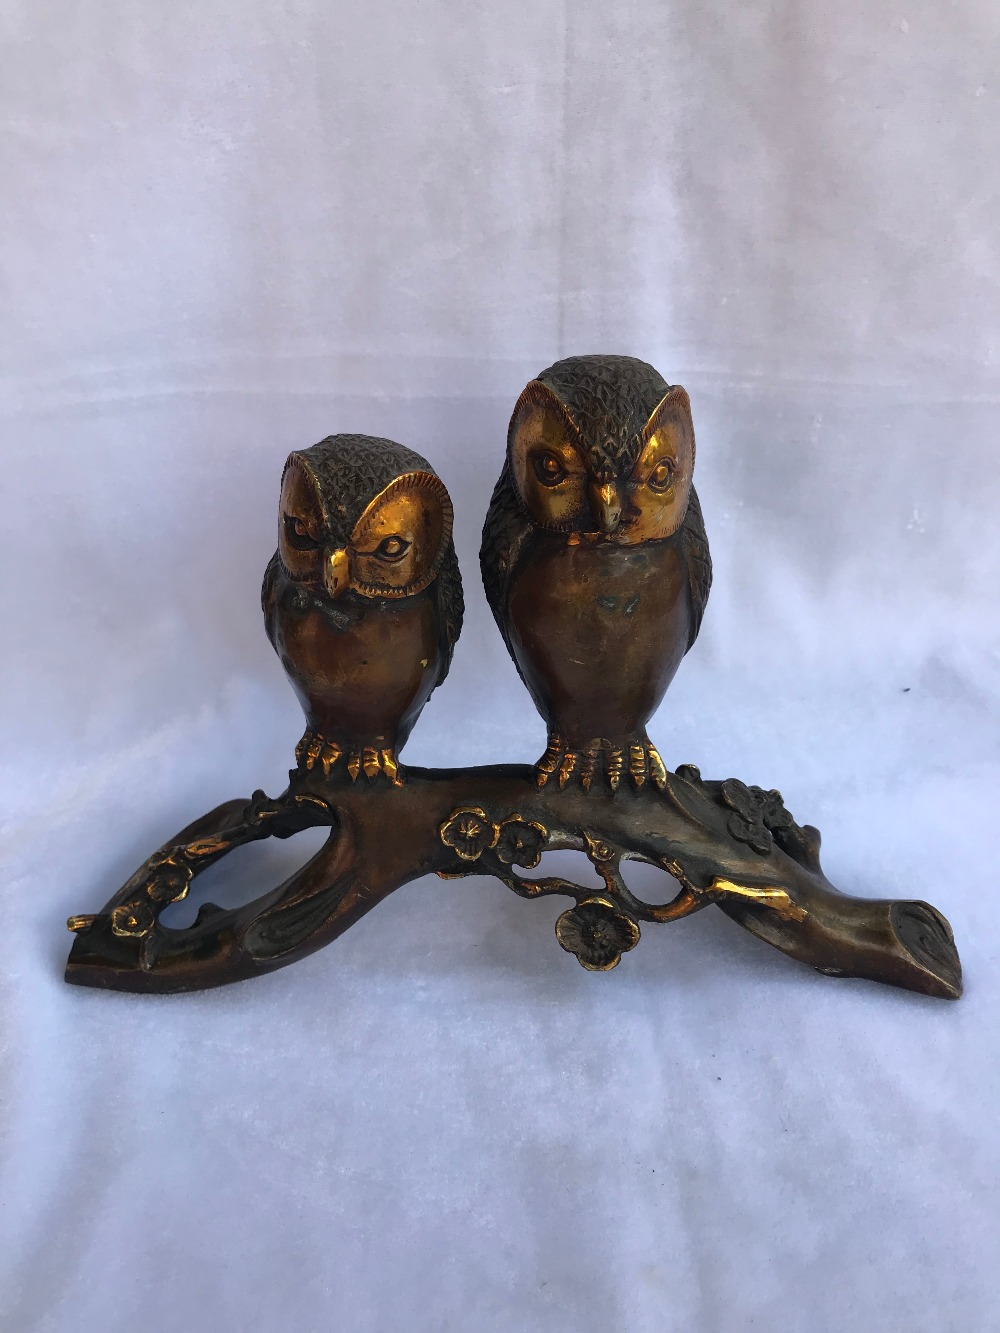 Chinese Folk Classical Copper Bronze Gilt Feng Shui Two Owls Home DecorationsChinese Folk Classical Copper Bronze Gilt Feng Shui Two Owls Home Decorations